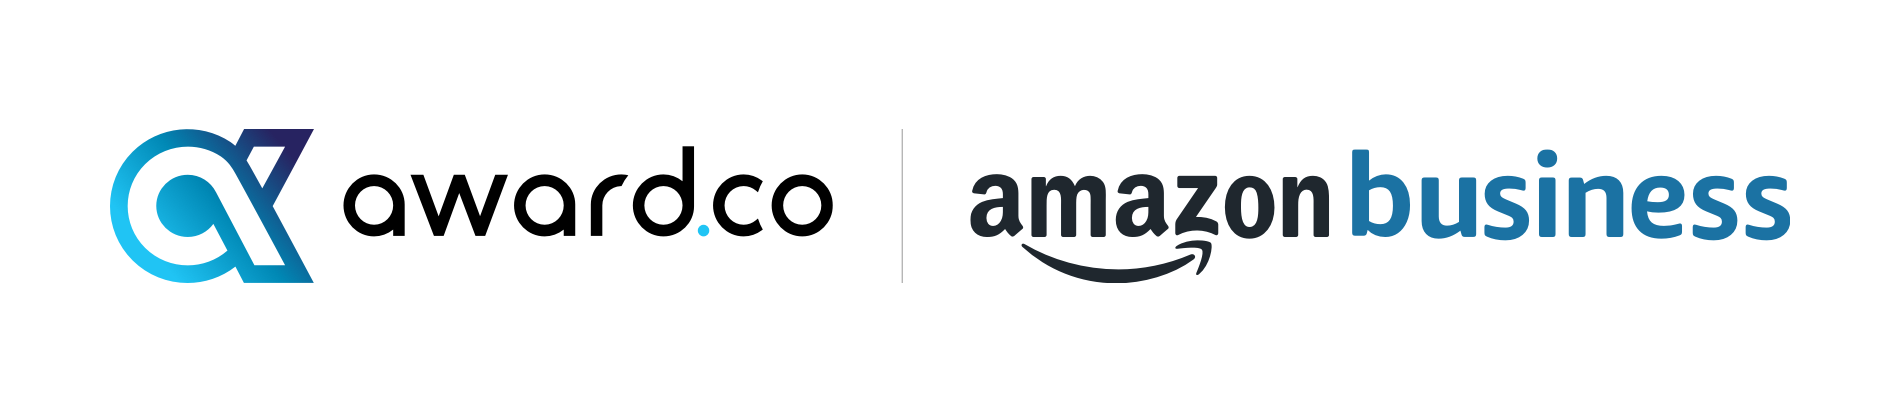 Awardco Innovates on Employee Recognition & Incentive Programs Using Amazon Business